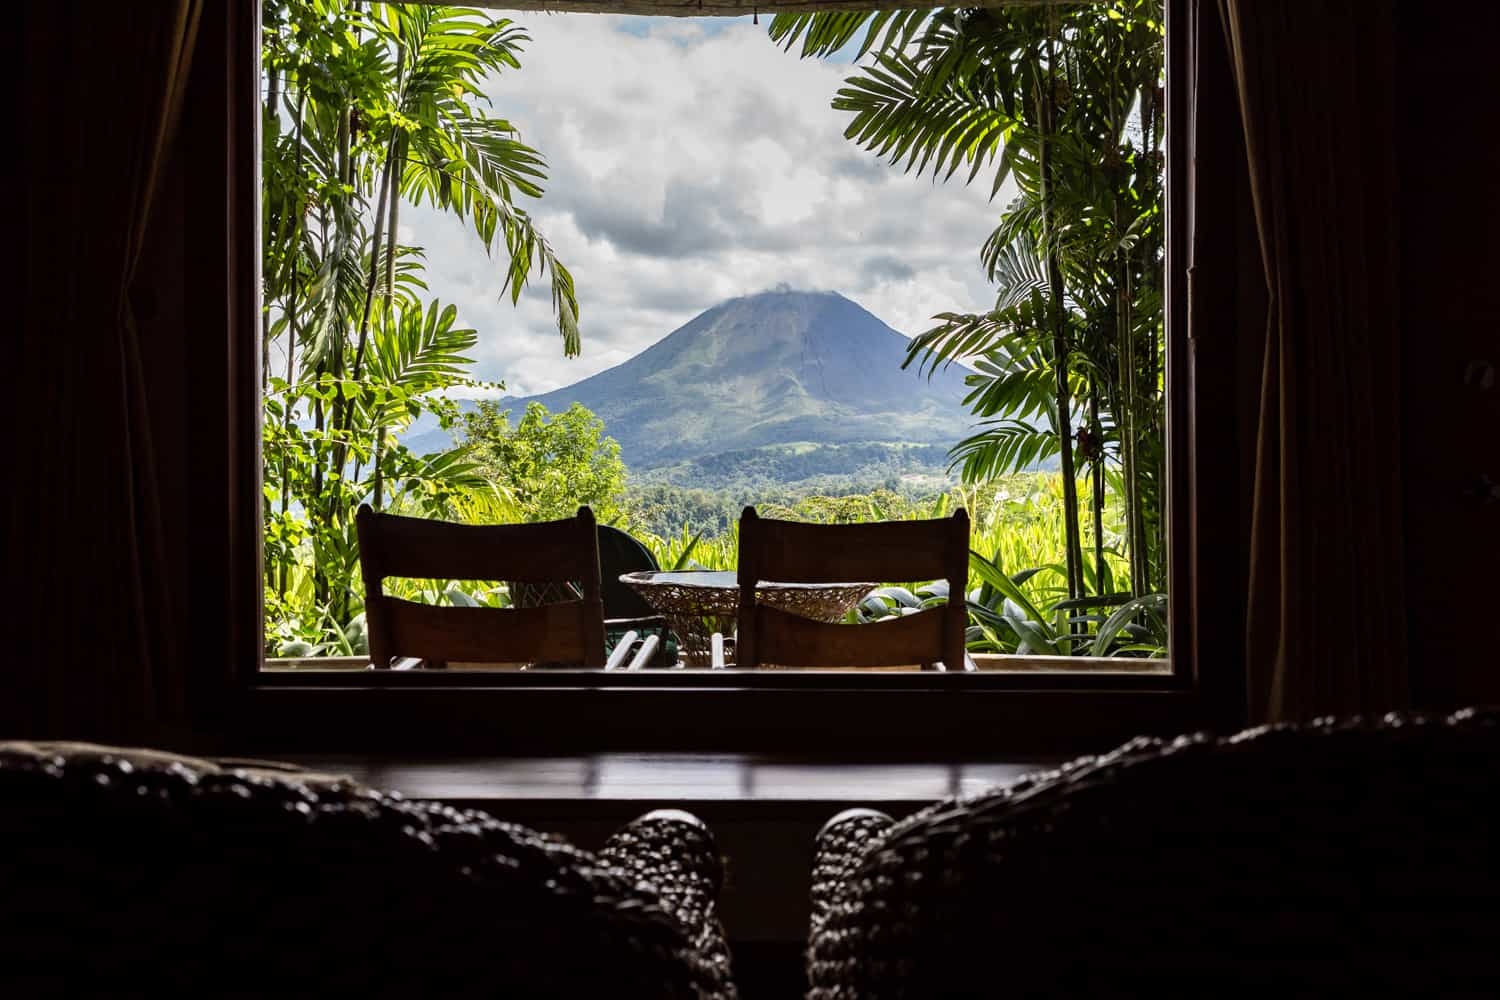 Have a seat in Springs Resort & Spa's Honeymoon Vista suite and marvel at its view of the Arenal Volcano.